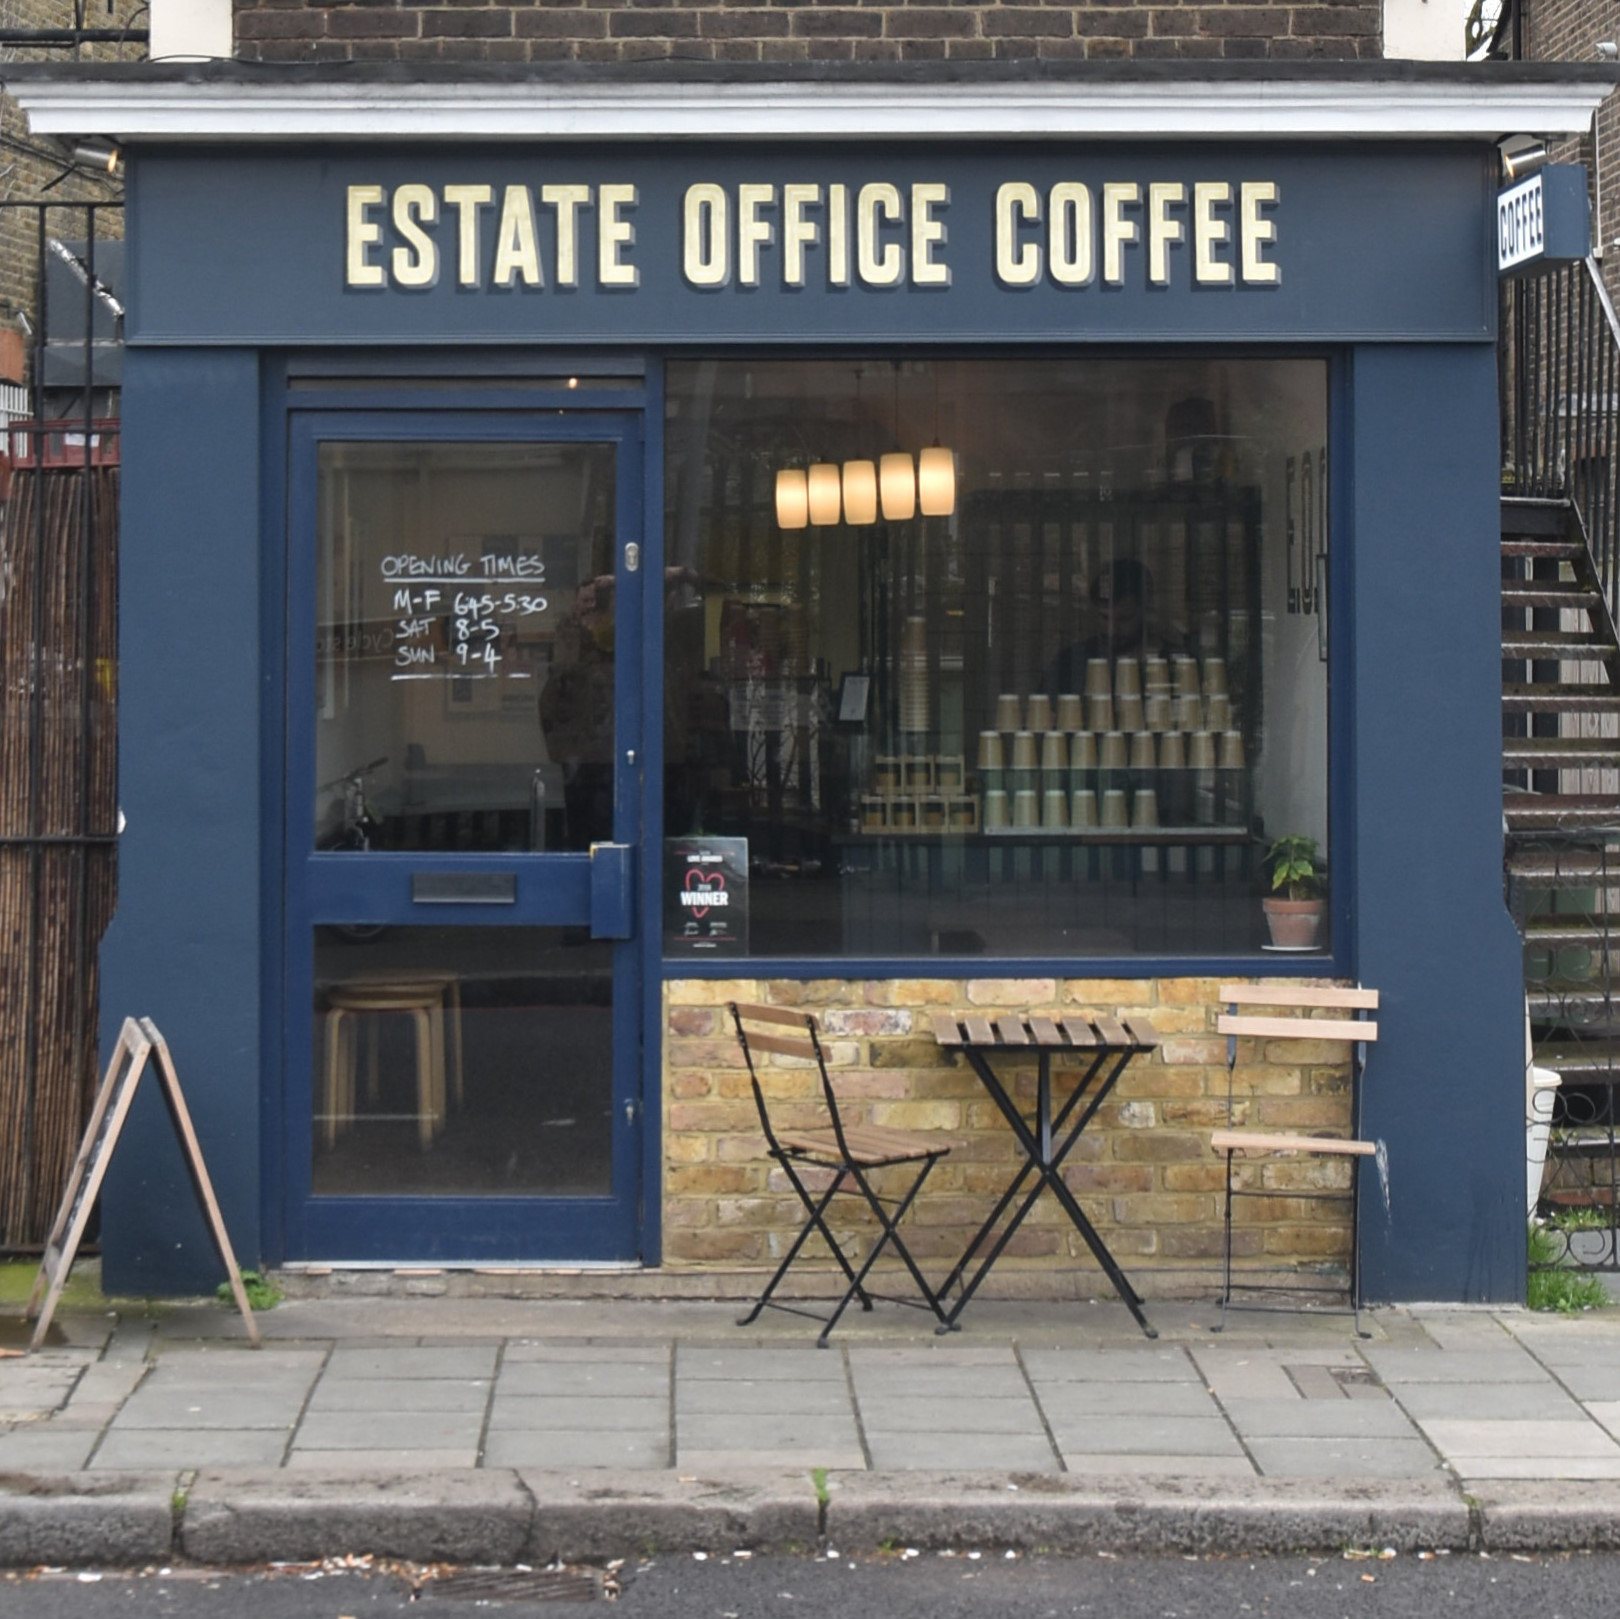 Estate Office Coffee in Streatham, as seen from directly across the road.